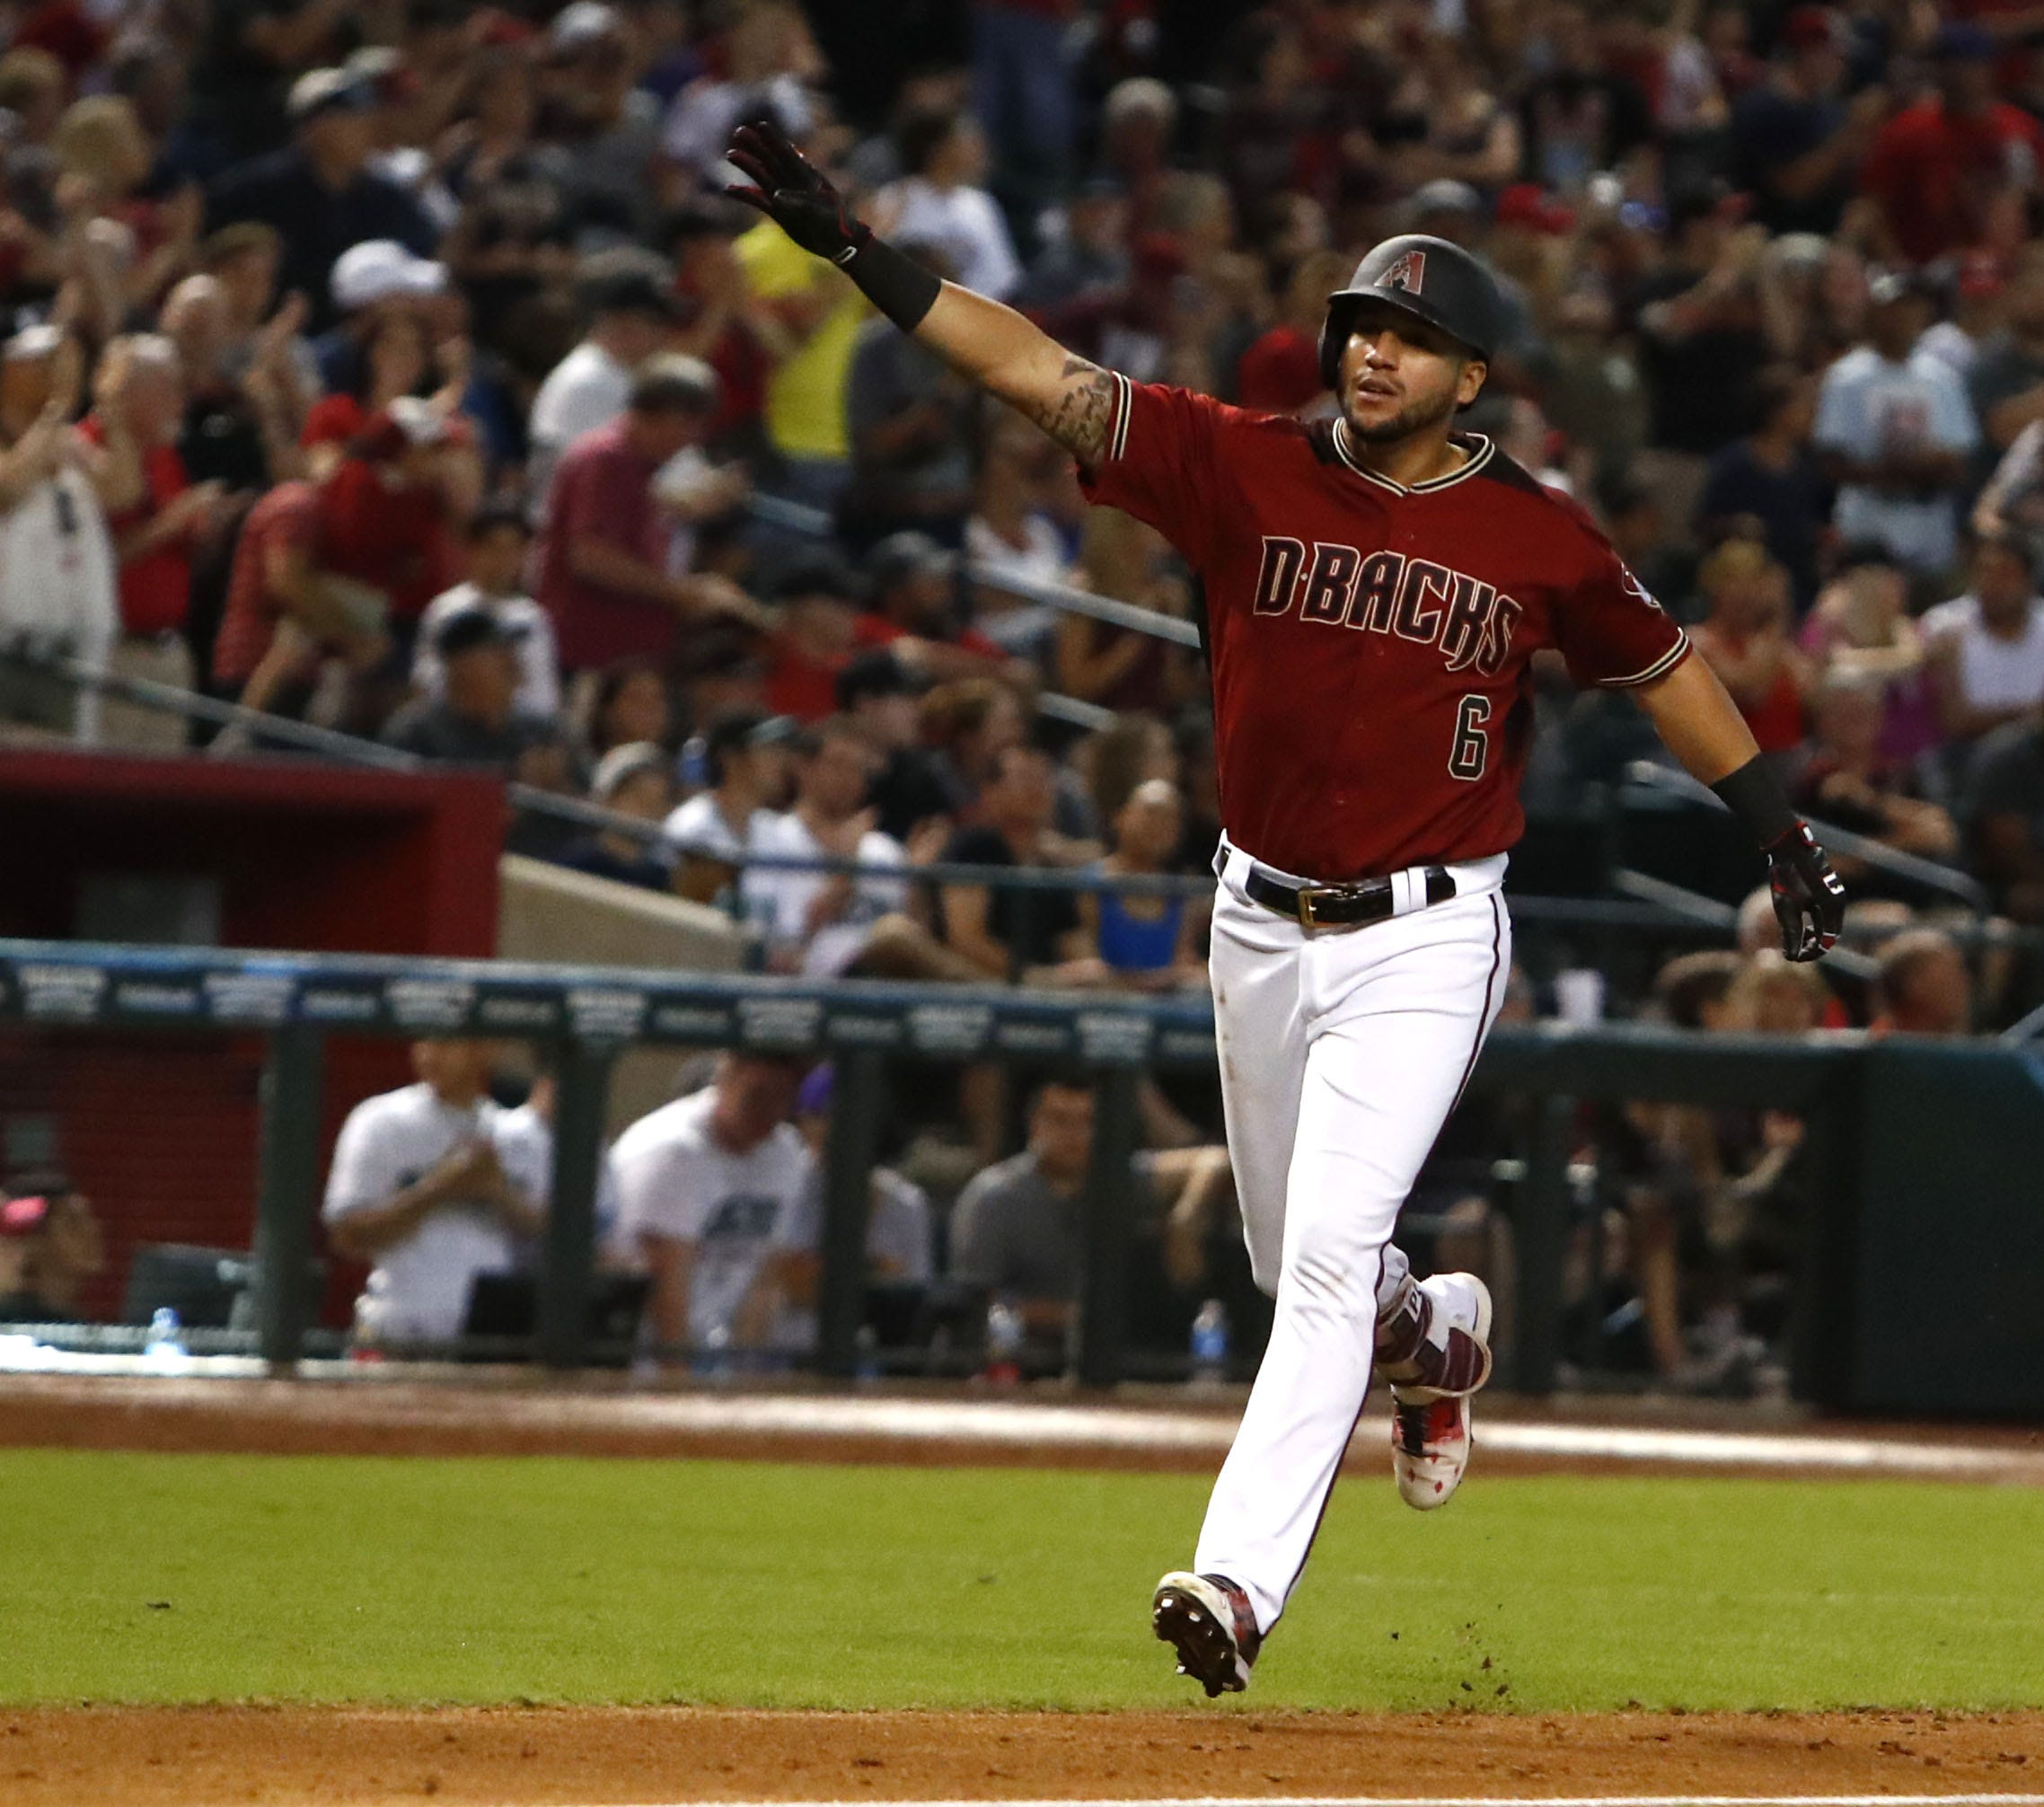 Diamondbacks offense explodes late in win over Brewers